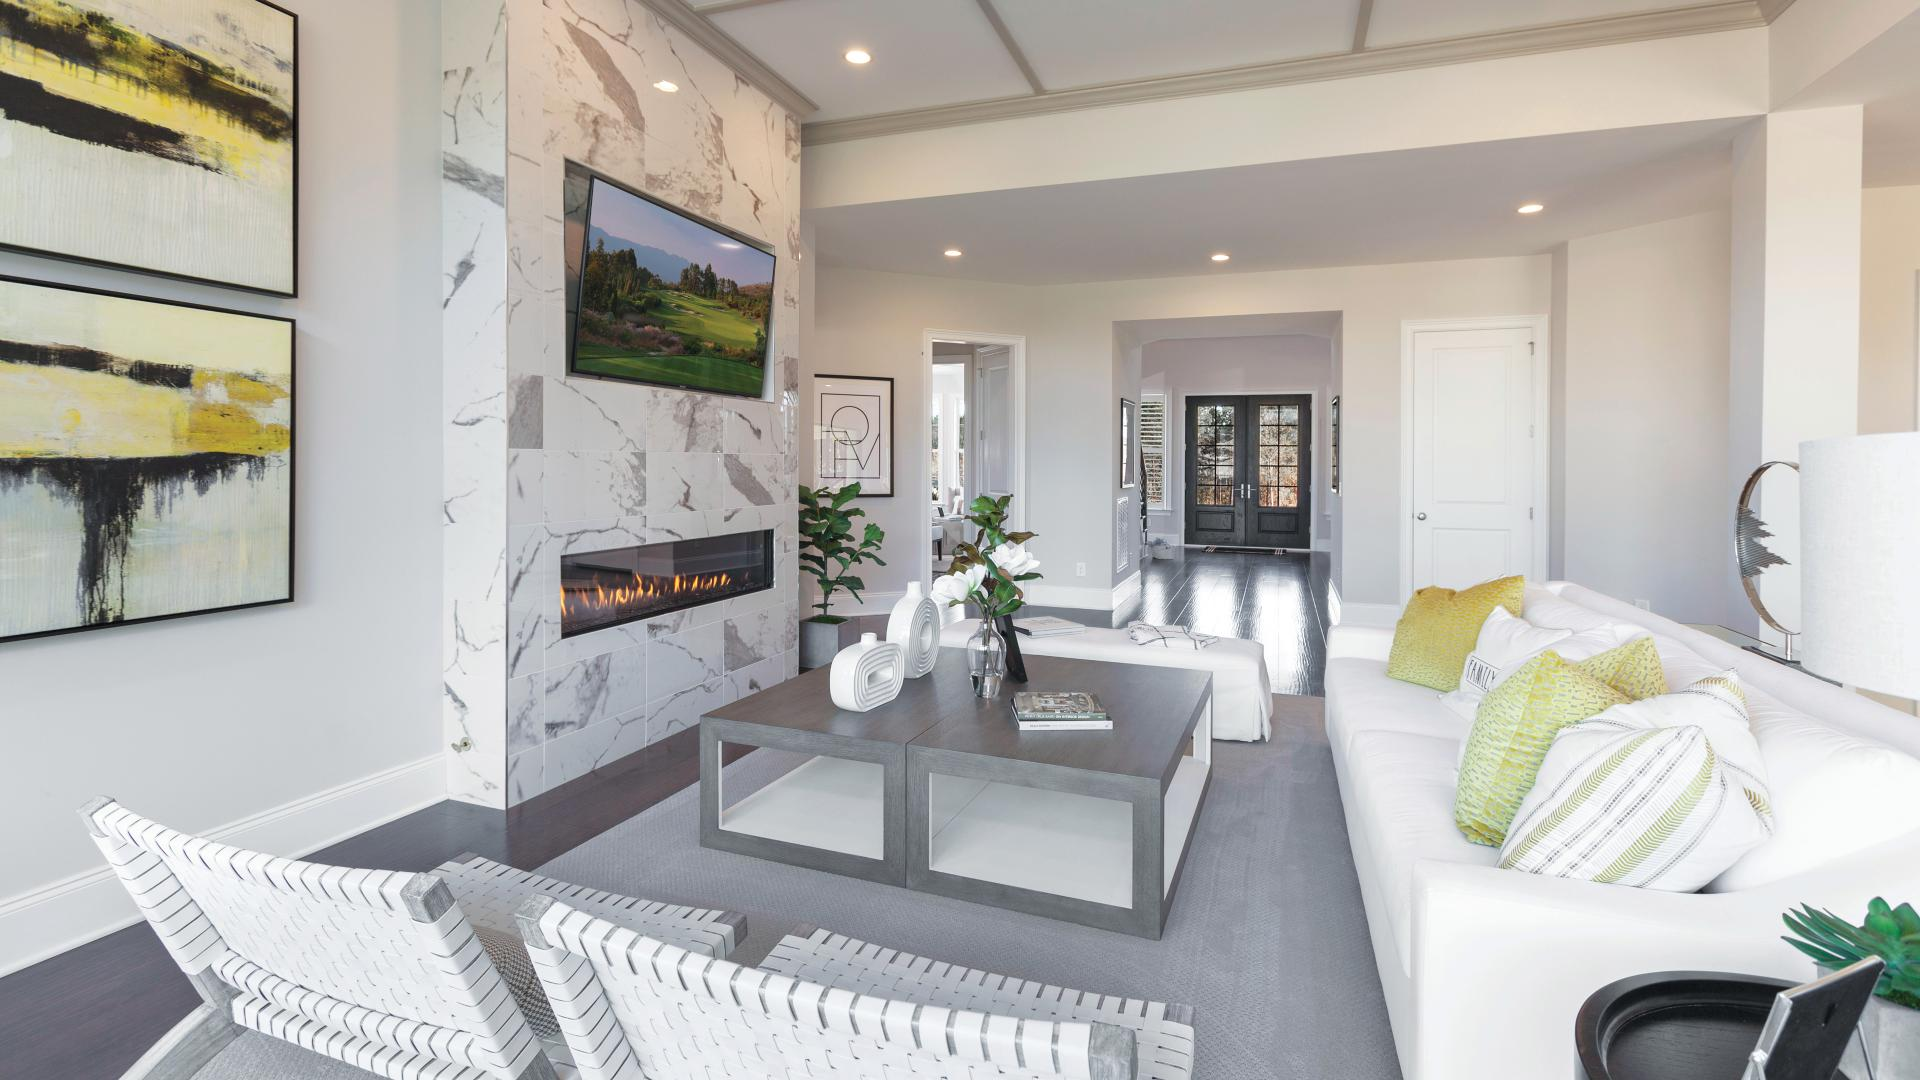 Entertaining is a breeze in the spacious great room